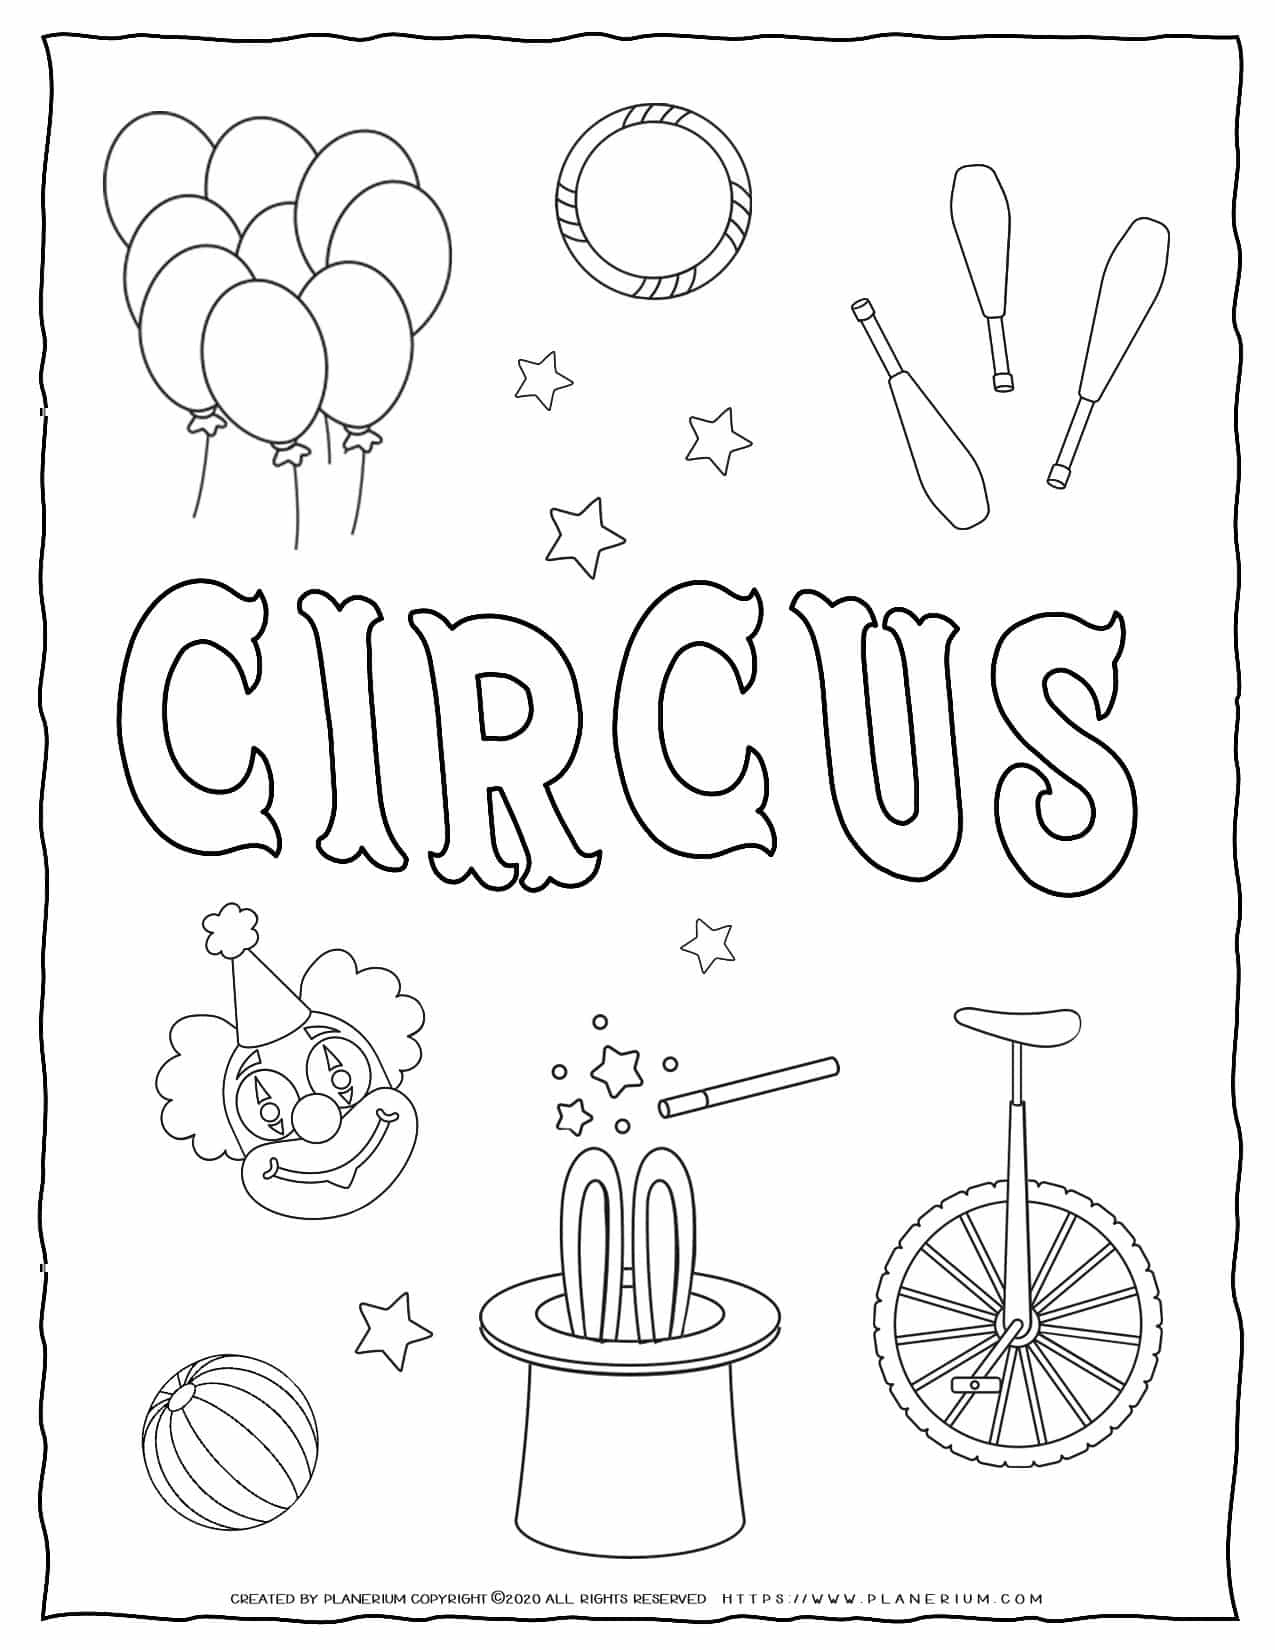 Circus Coloring Page - Circus Title and Objects | Planerium